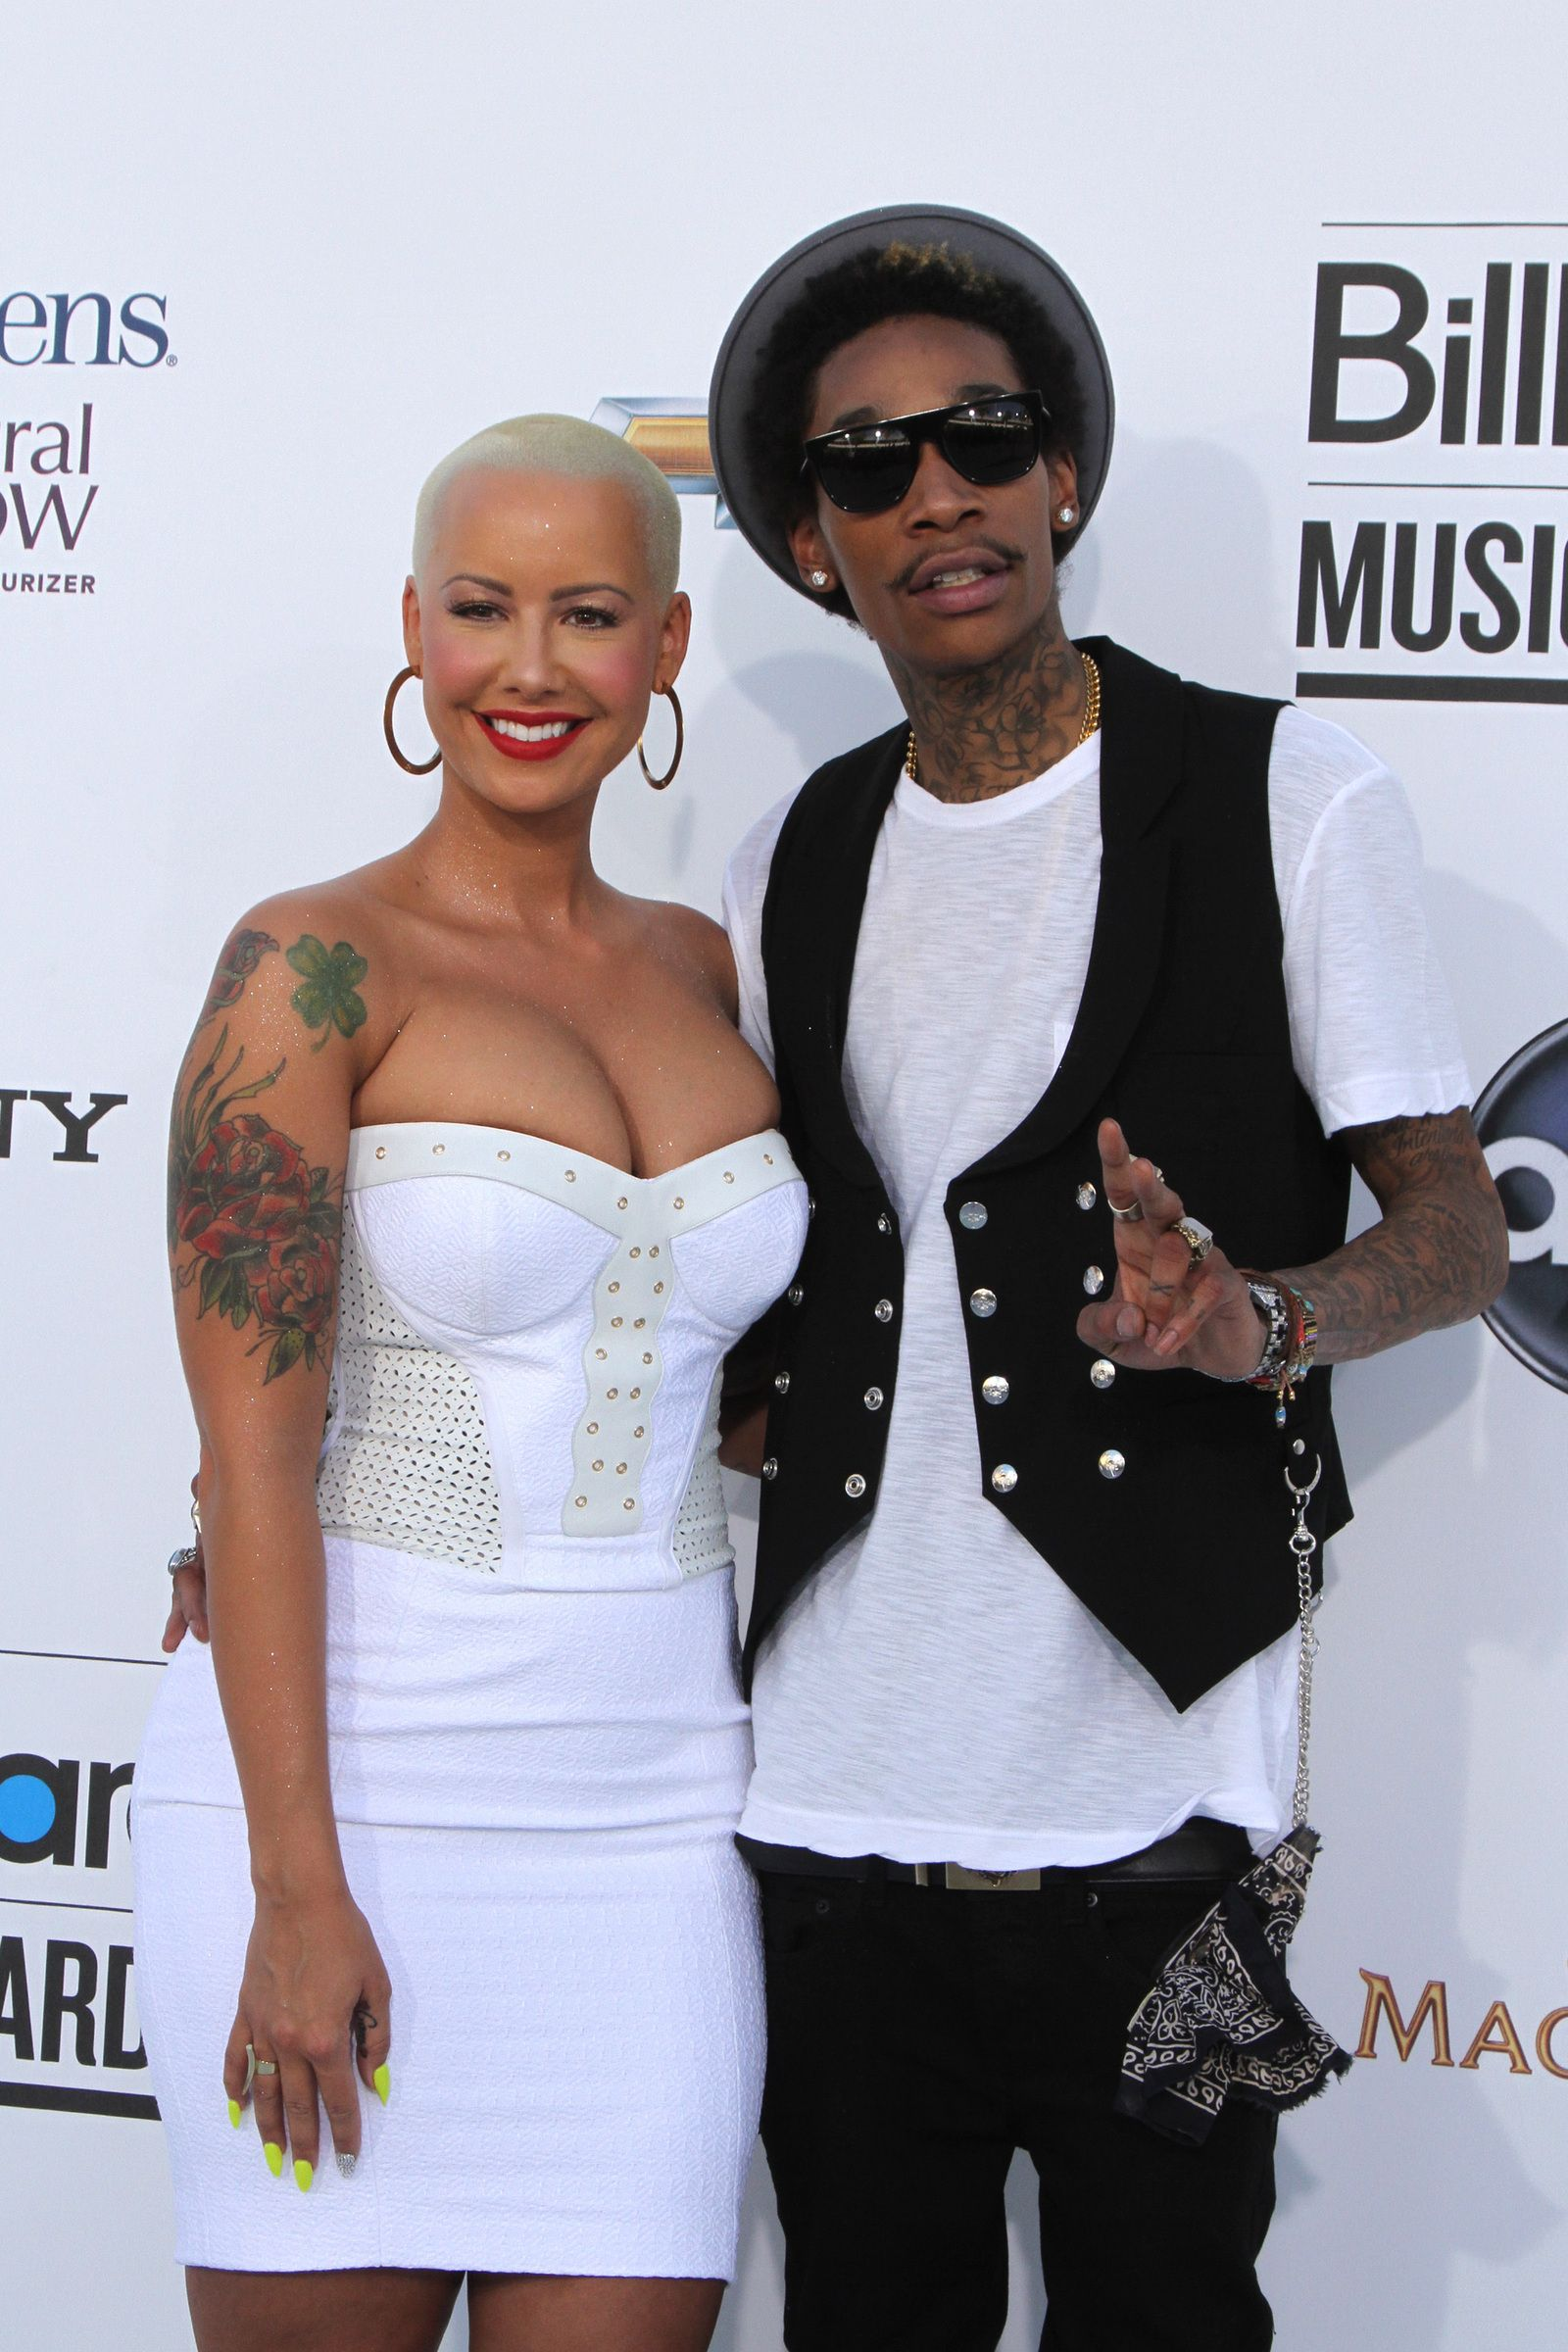 Amber Rose and Wiz Khalifa Married Apparently! Celebs